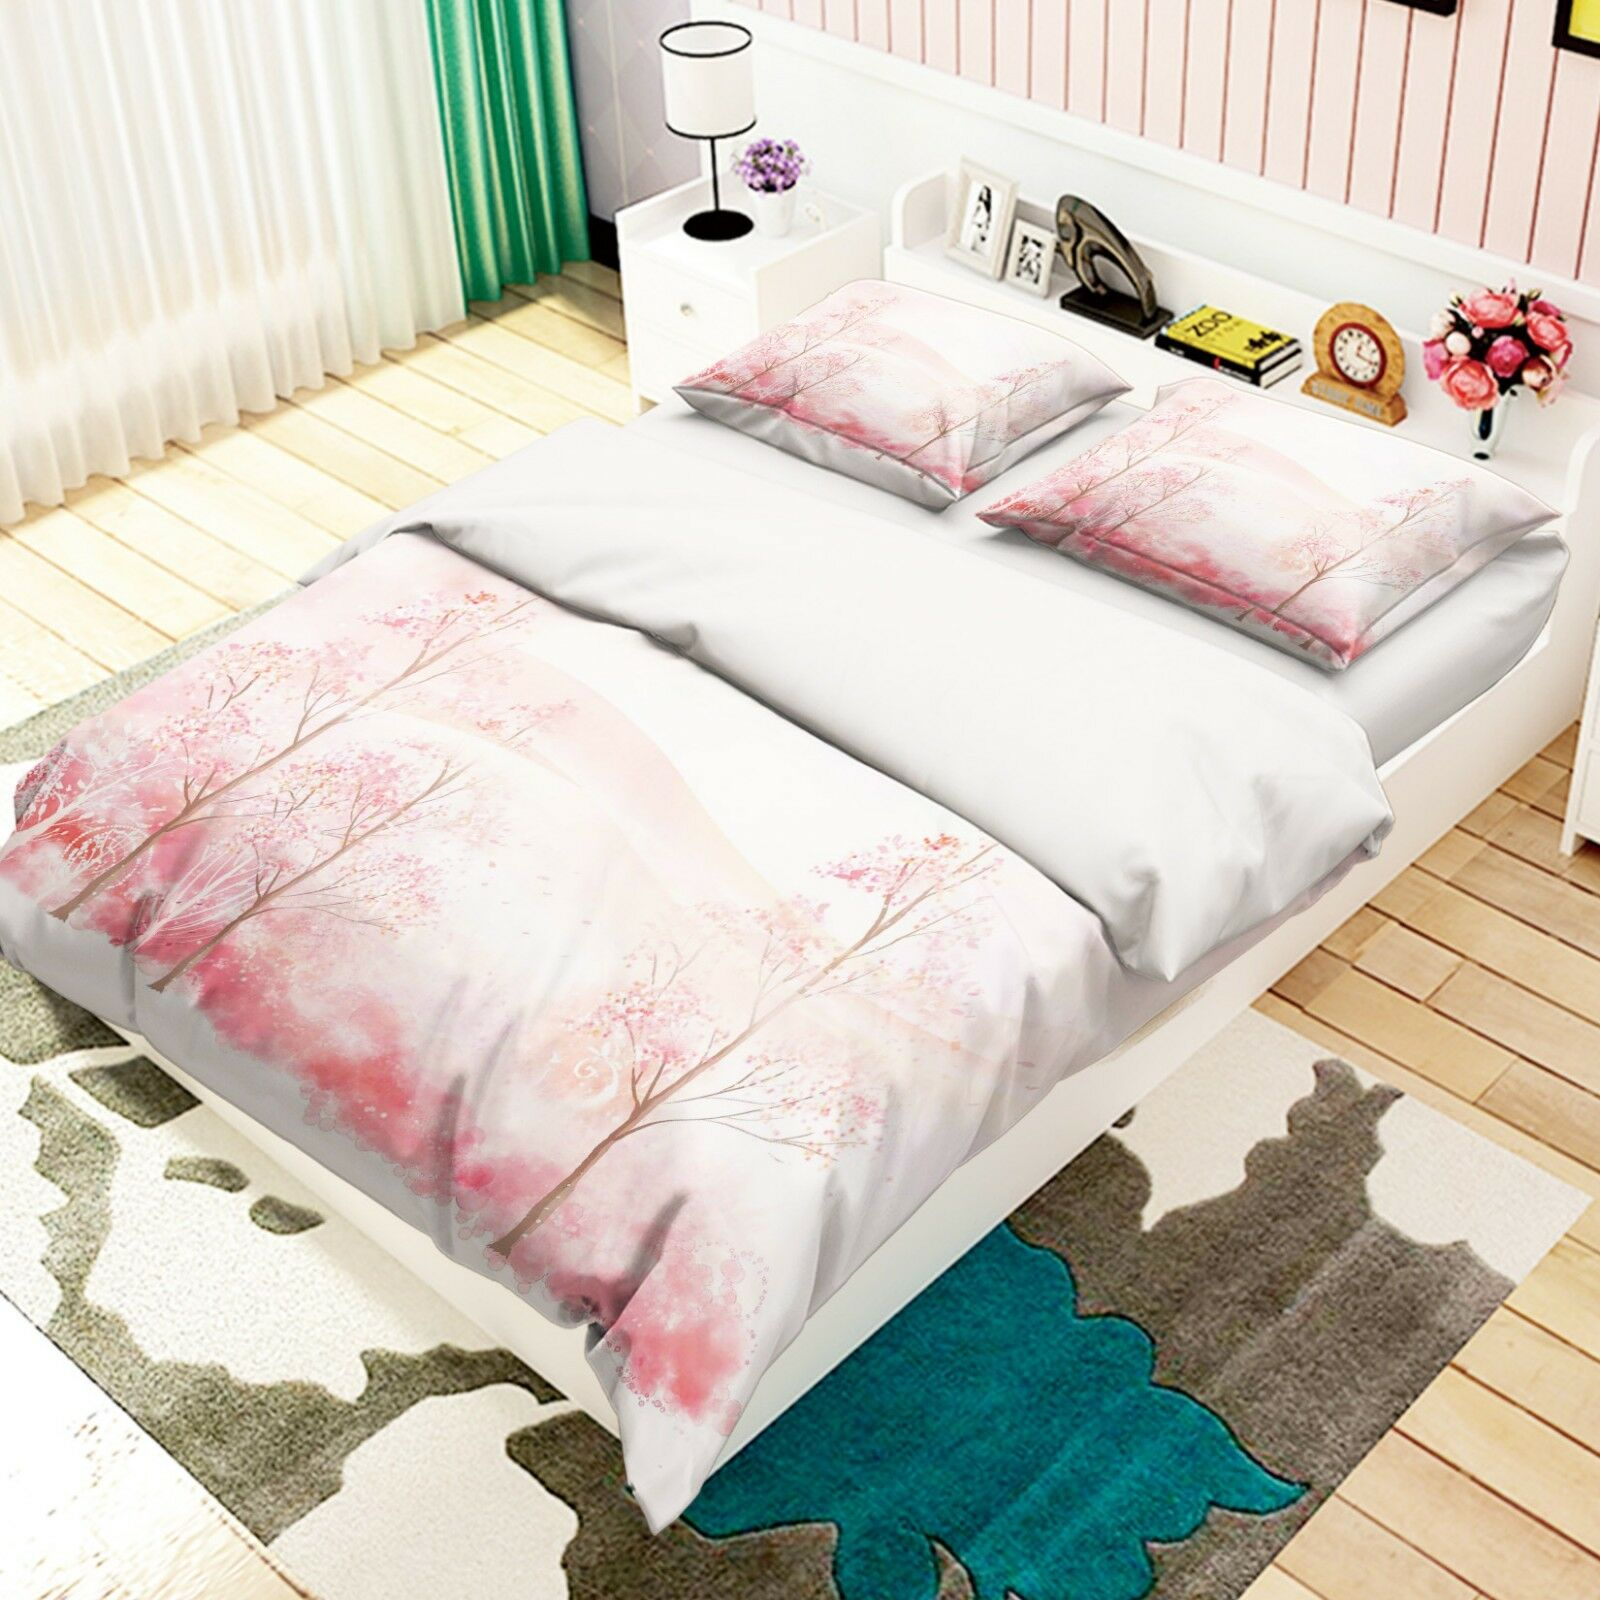 3D Painted Woods 57 Bed Pillowcases Quilt Duvet Cover Set Single Queen AU Carly